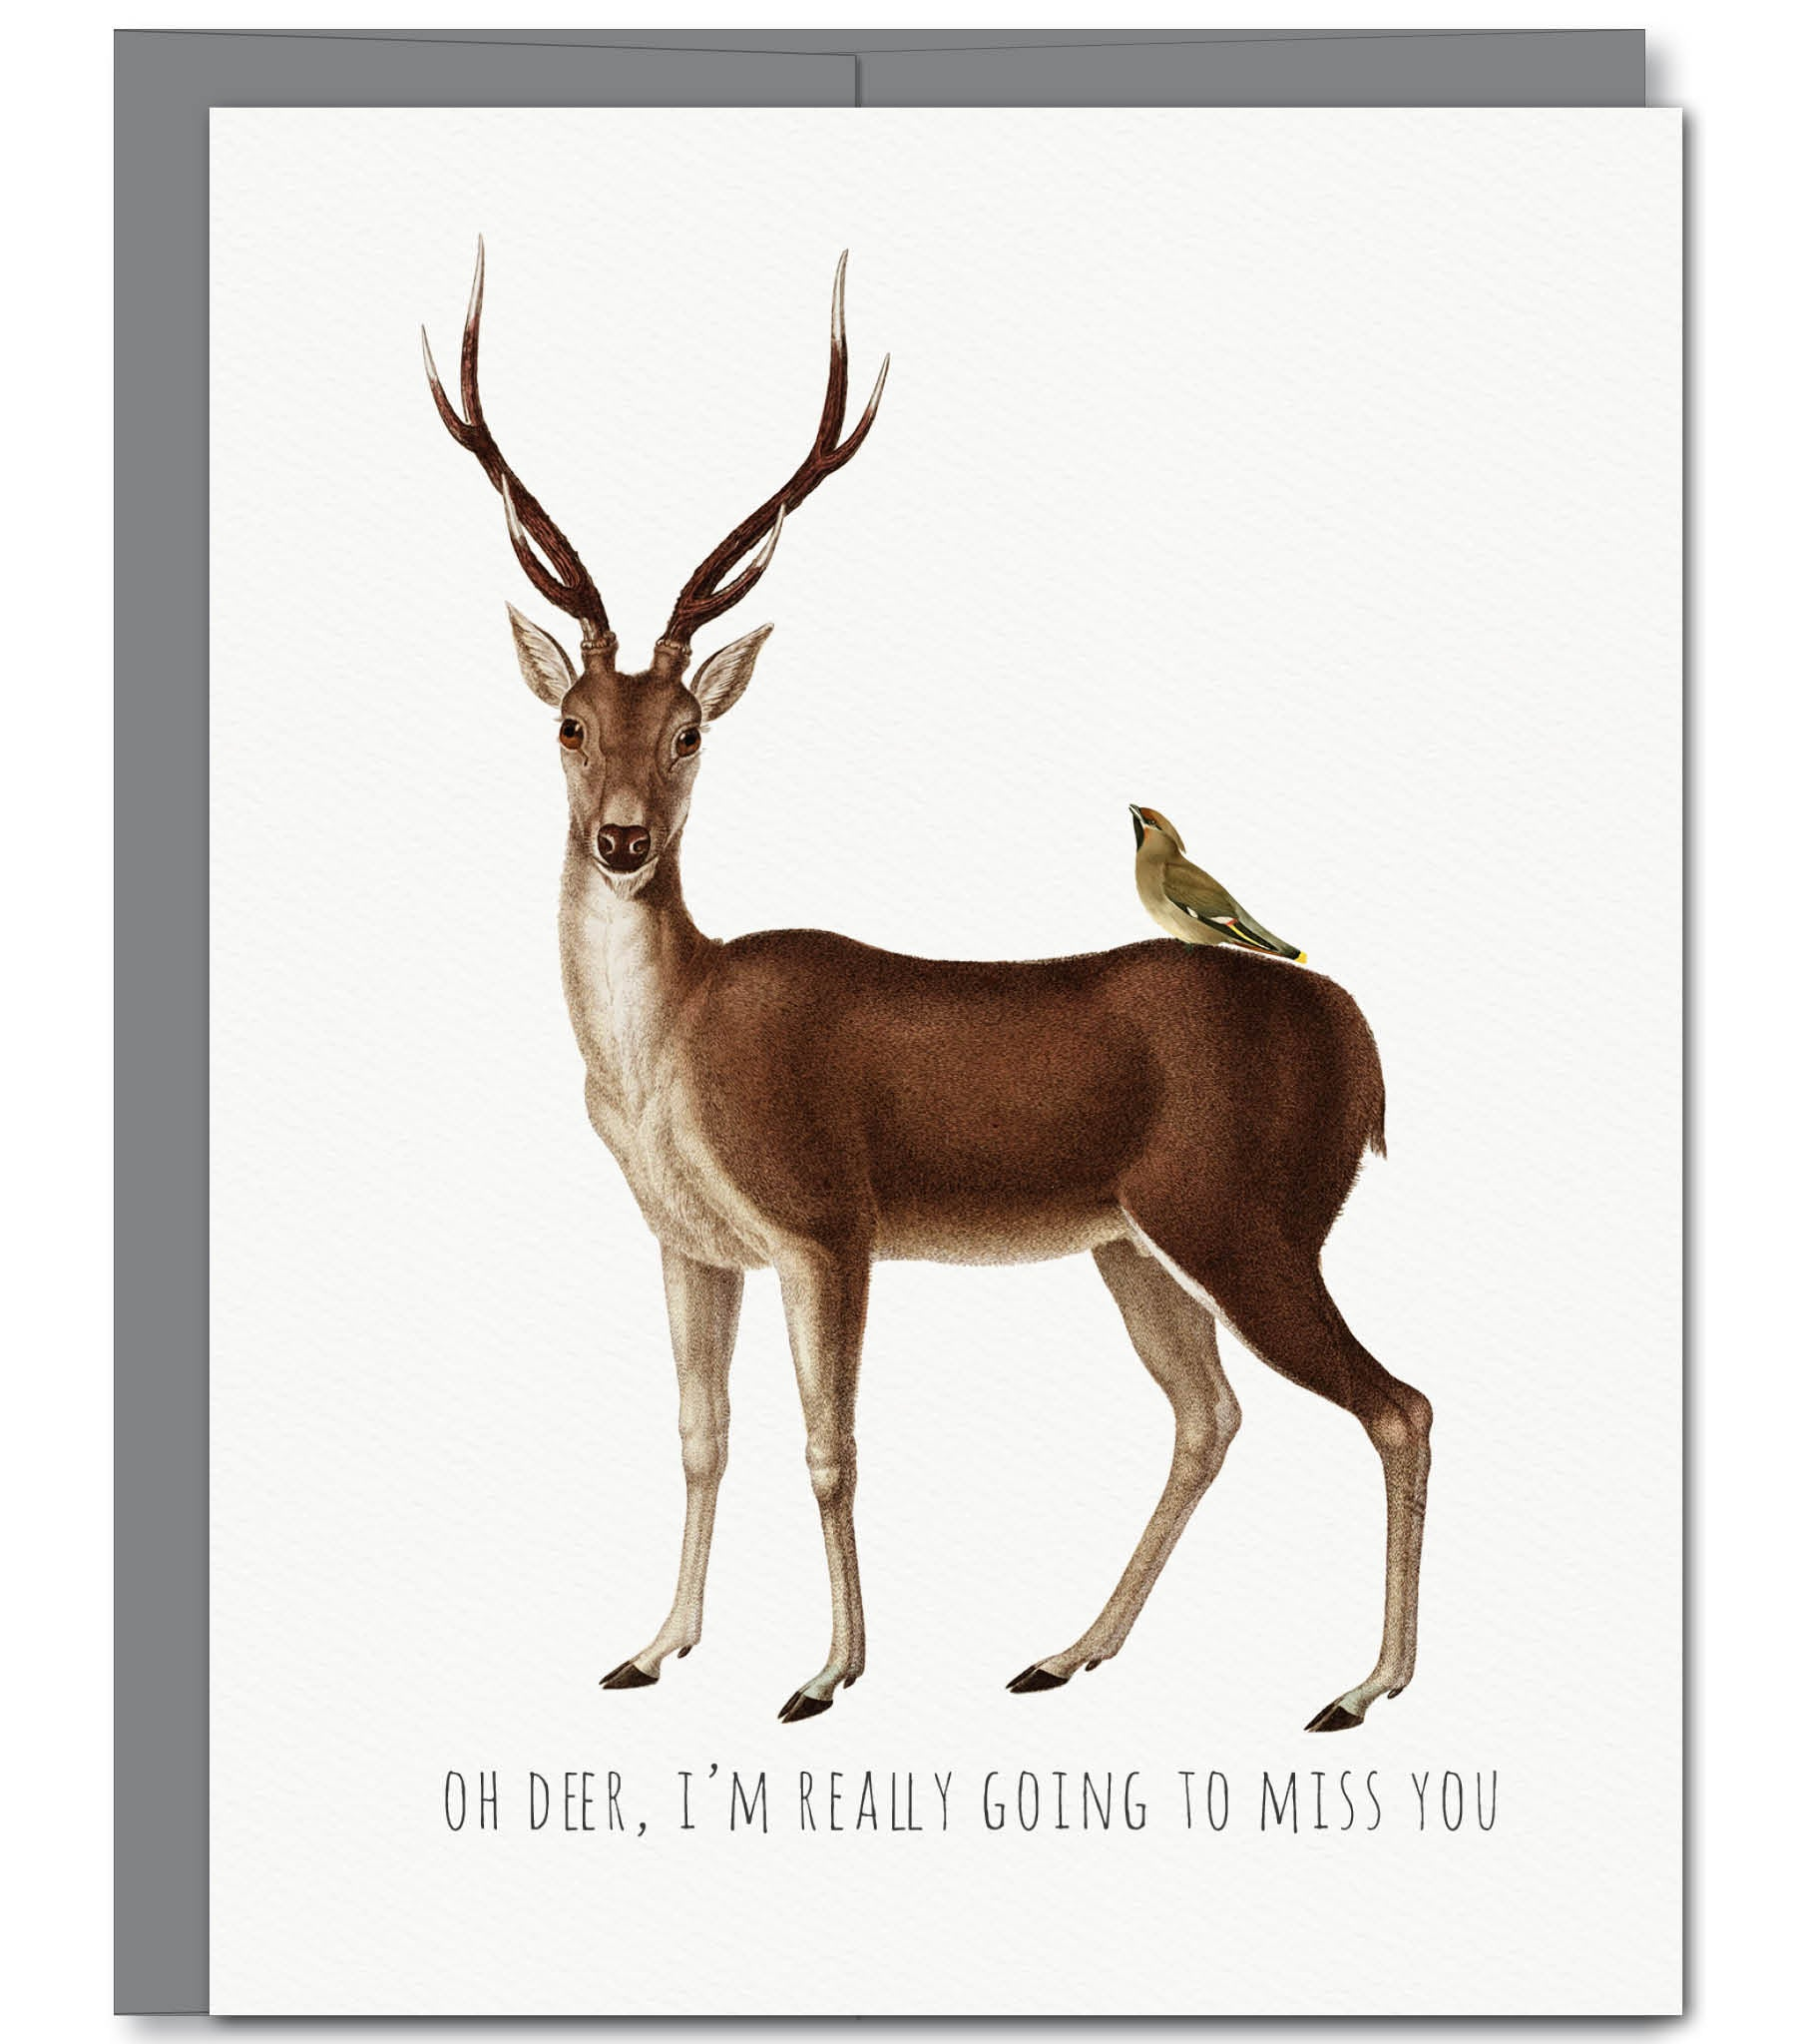 Oh deer miss you everyday glitter greeting card distinctive oh deer miss you glitter greeting card sylvan gate design kristyandbryce Image collections